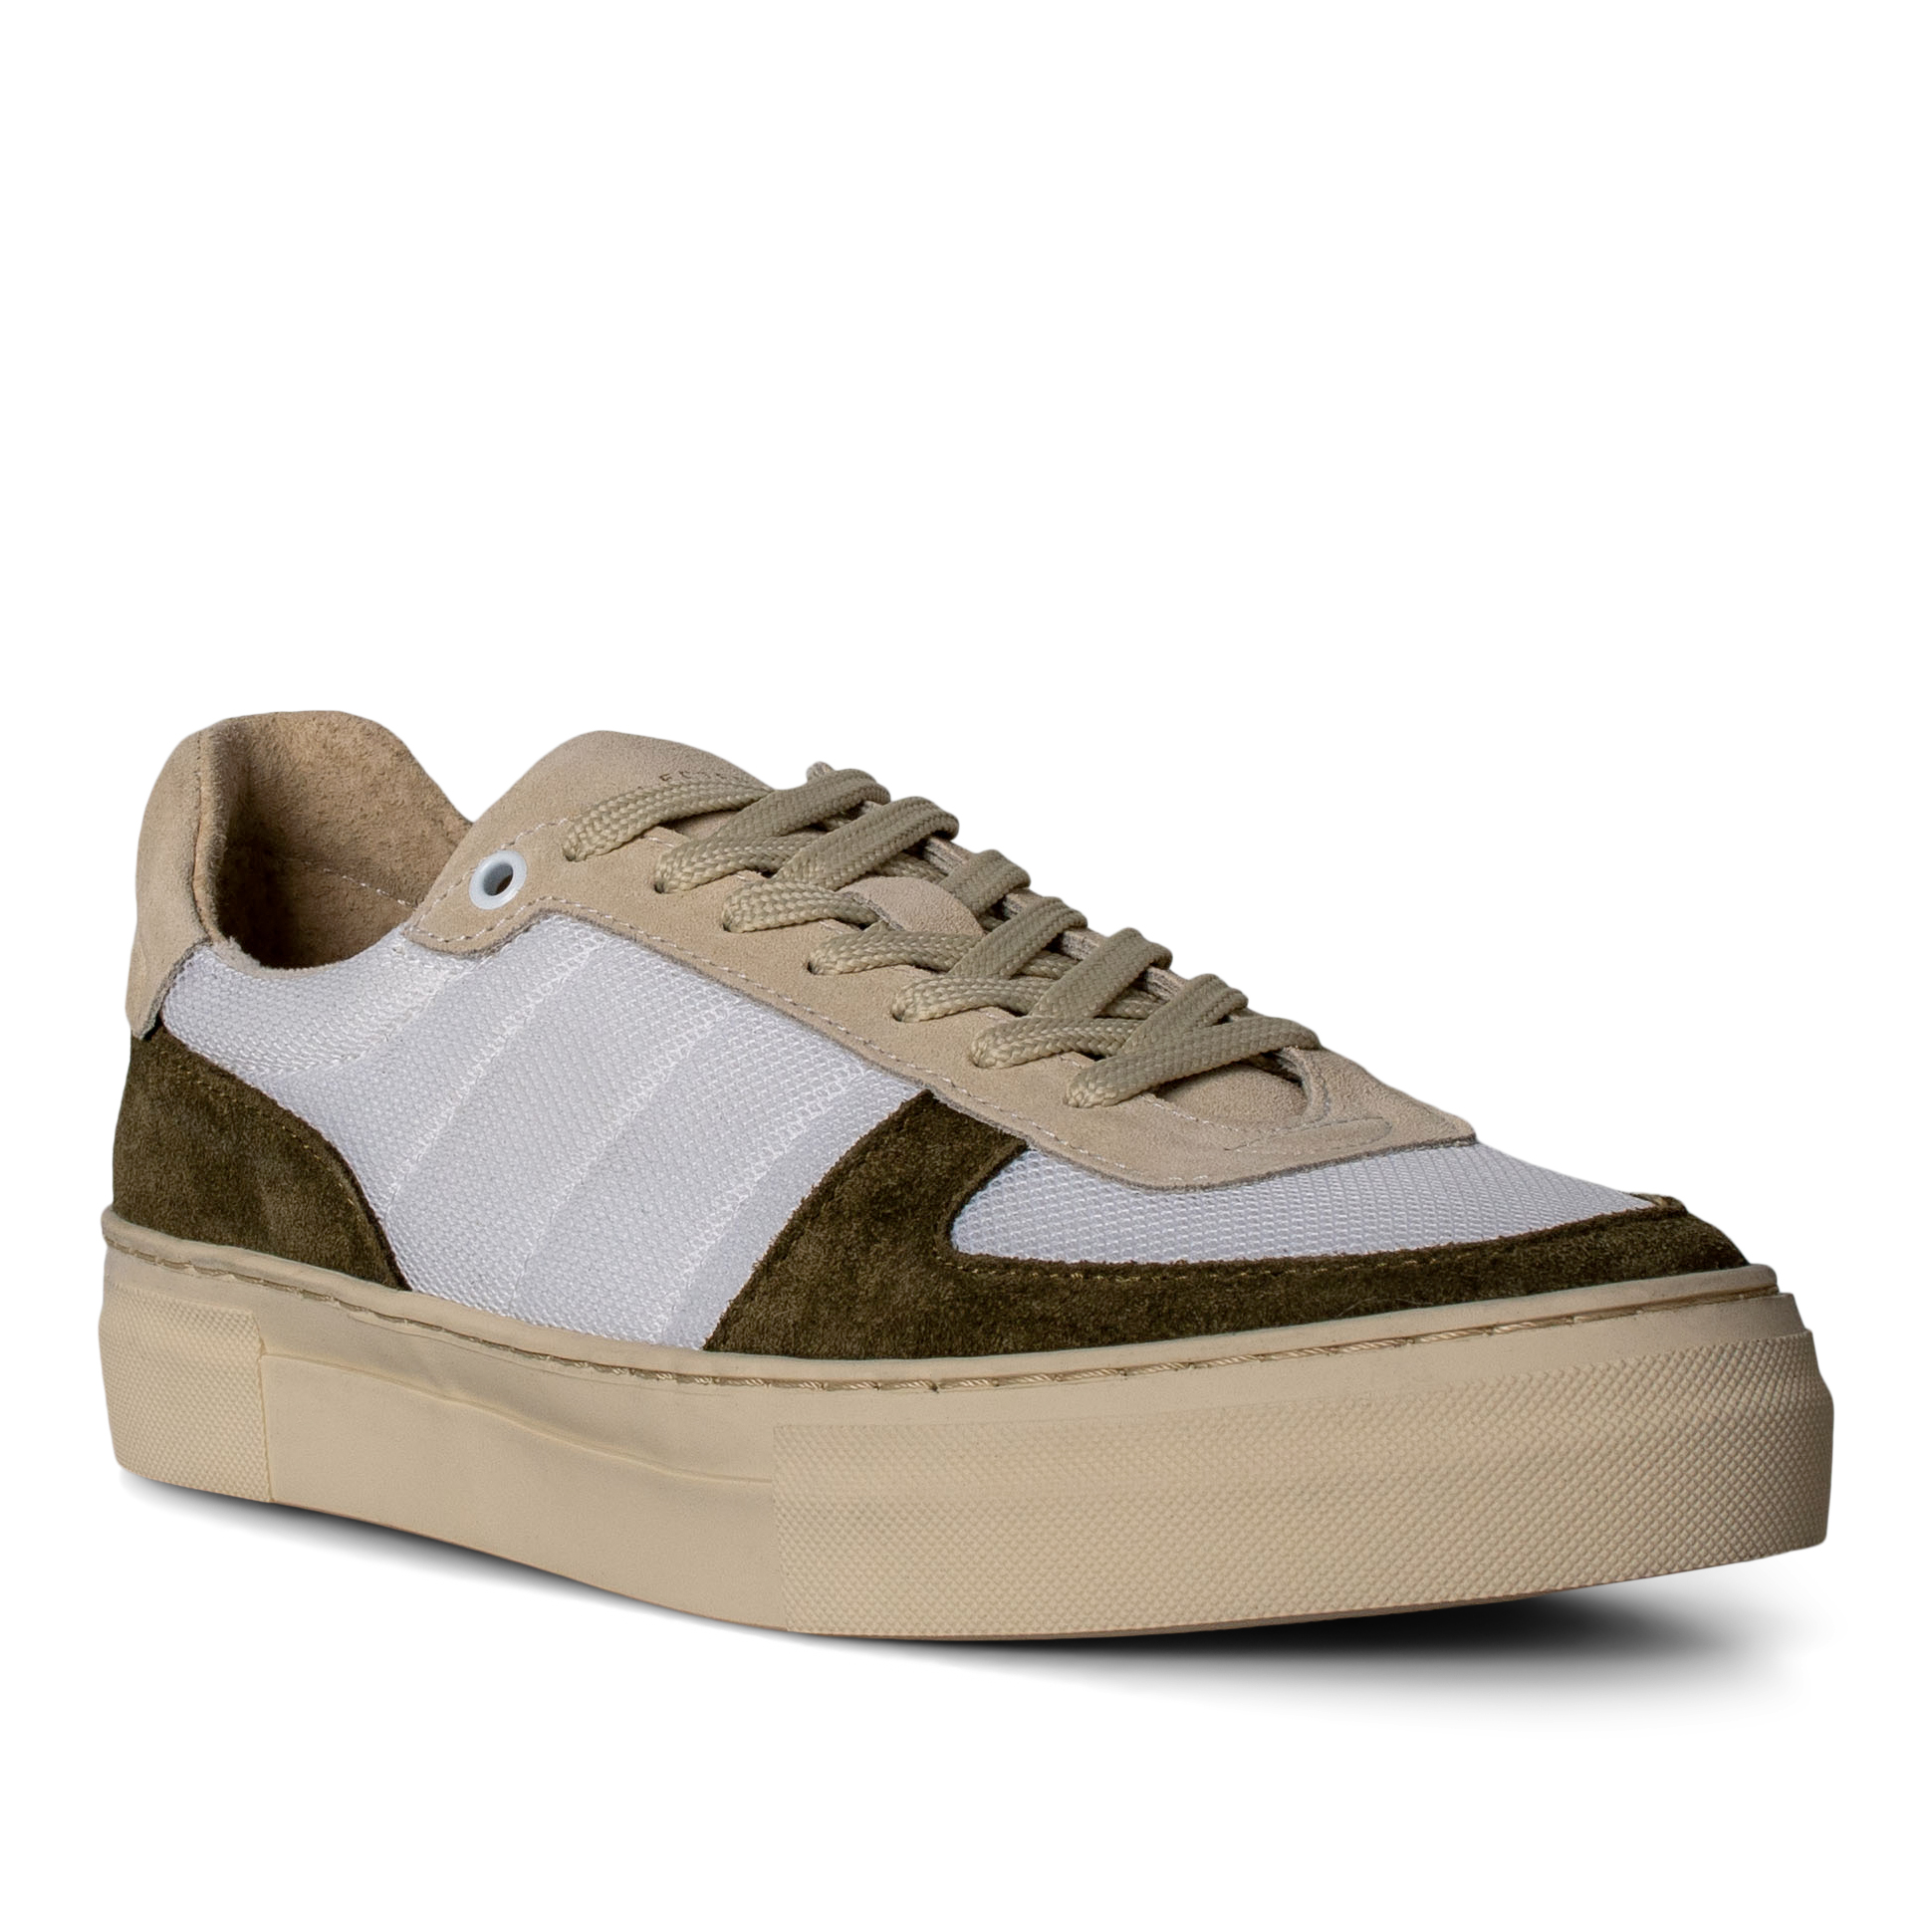 Selected Ruskinds sneakers